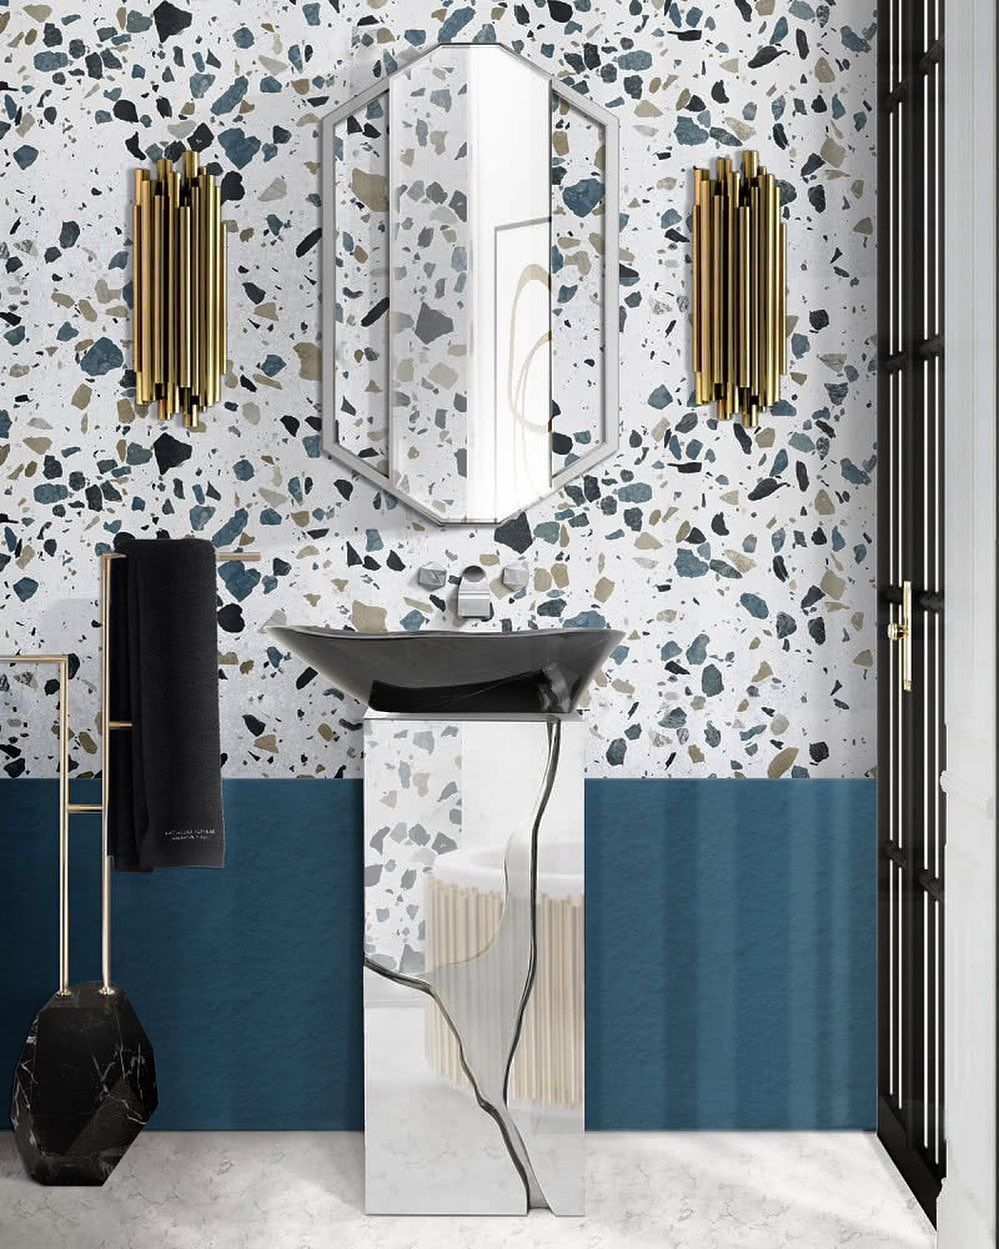 LUXURIOUS BLUE BATHROOM WITH A BRUBECK WALL